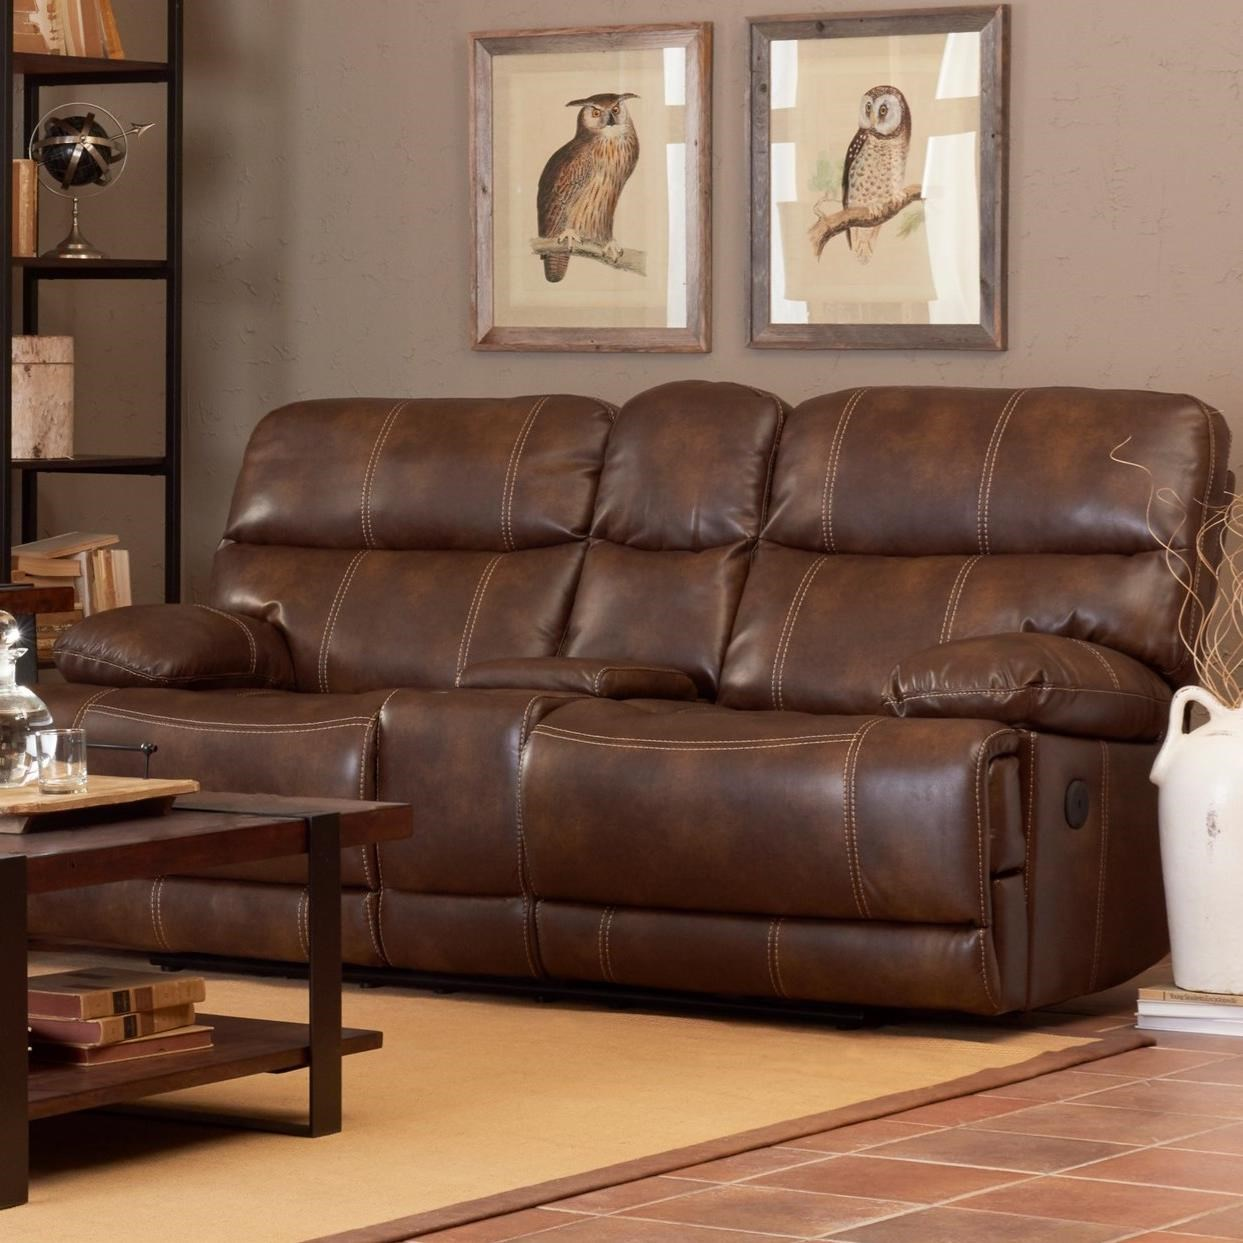 Rizzo Power Console Reclining Loveseat by Klaussner International at Northeast Factory Direct